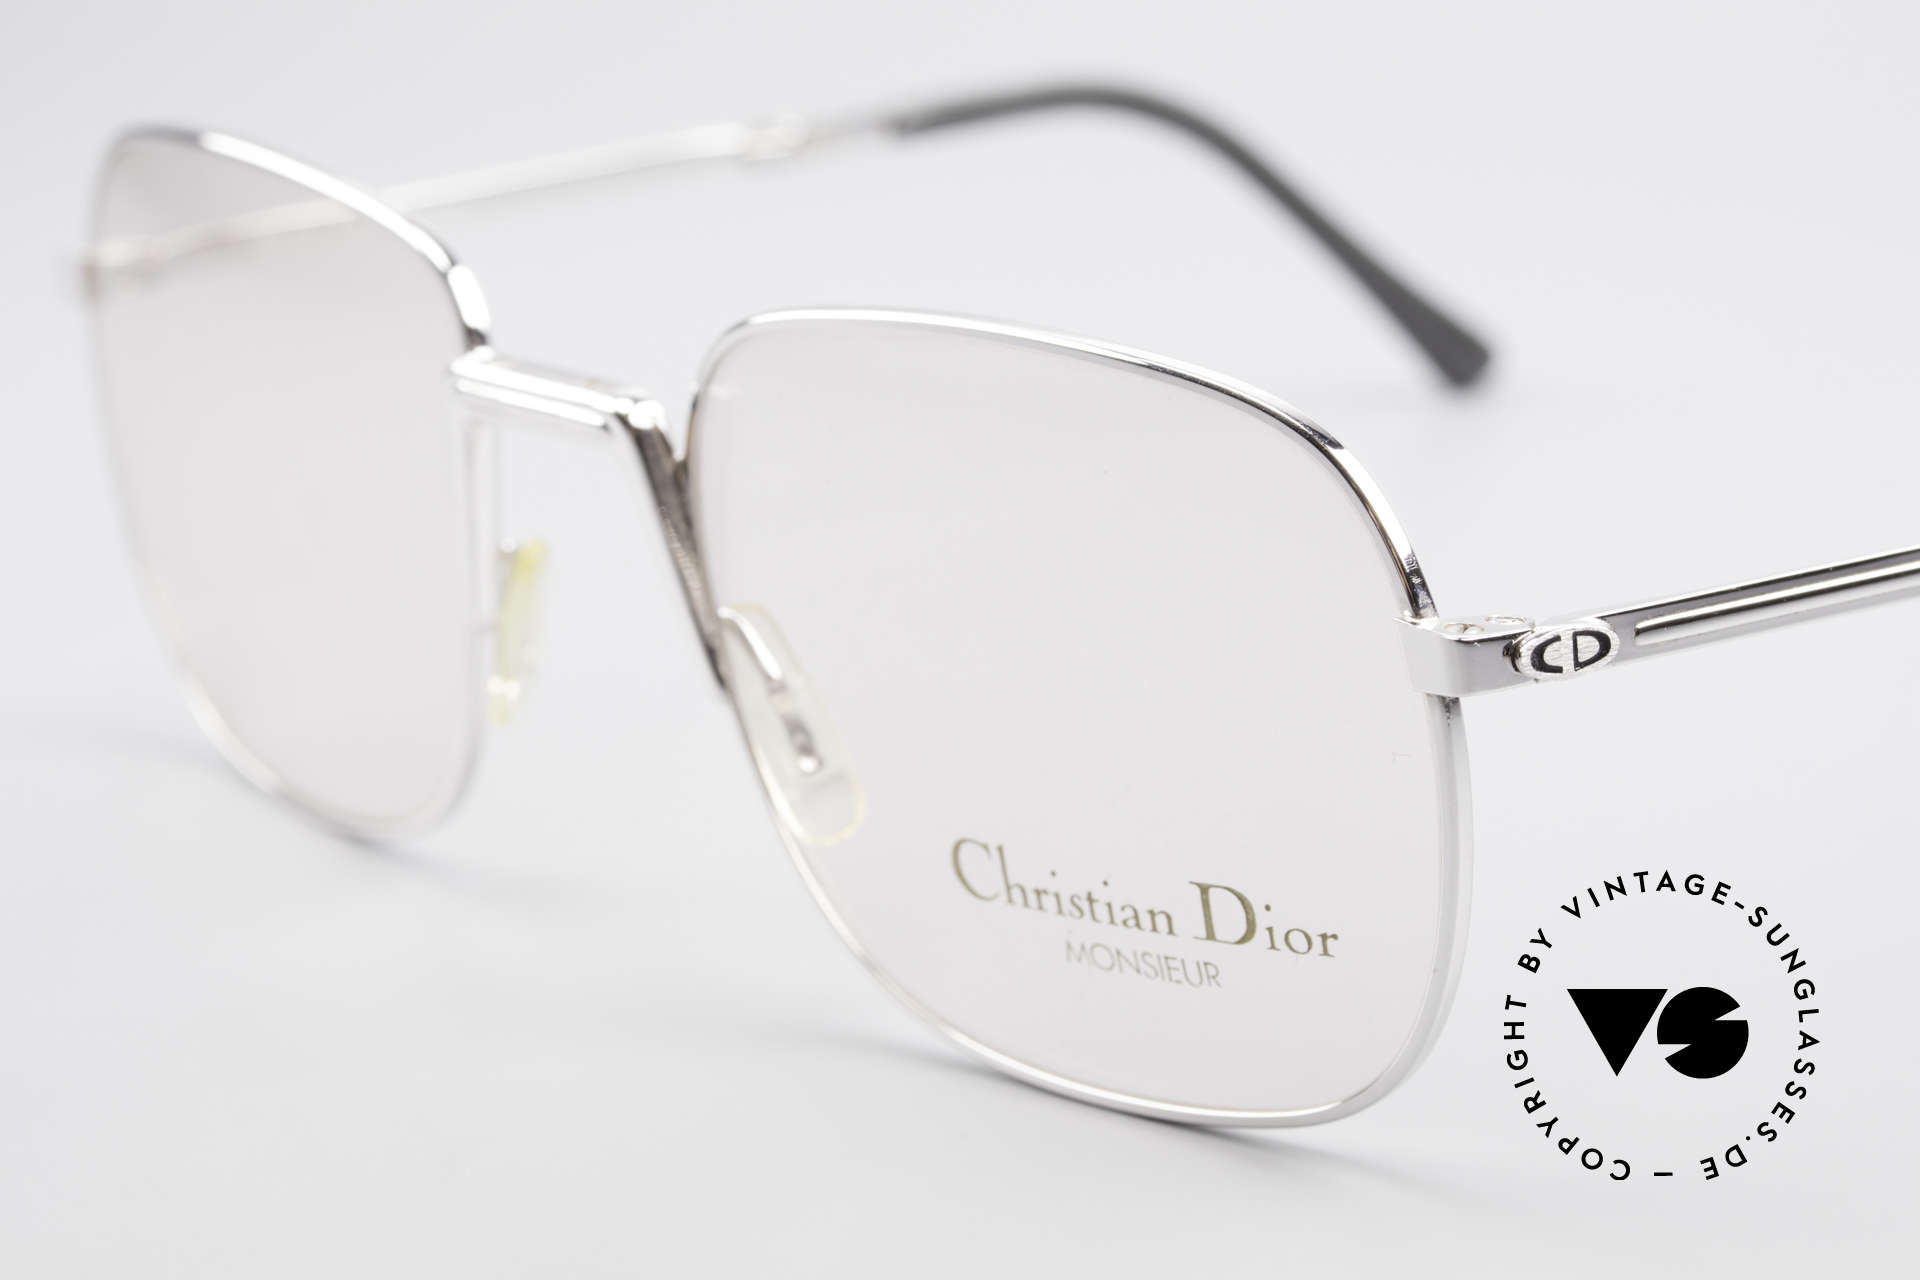 Christian Dior 2288 Folding Eyeglasses Monsieur, unworn (like all our vintage C. Dior designer eyewear), Made for Men